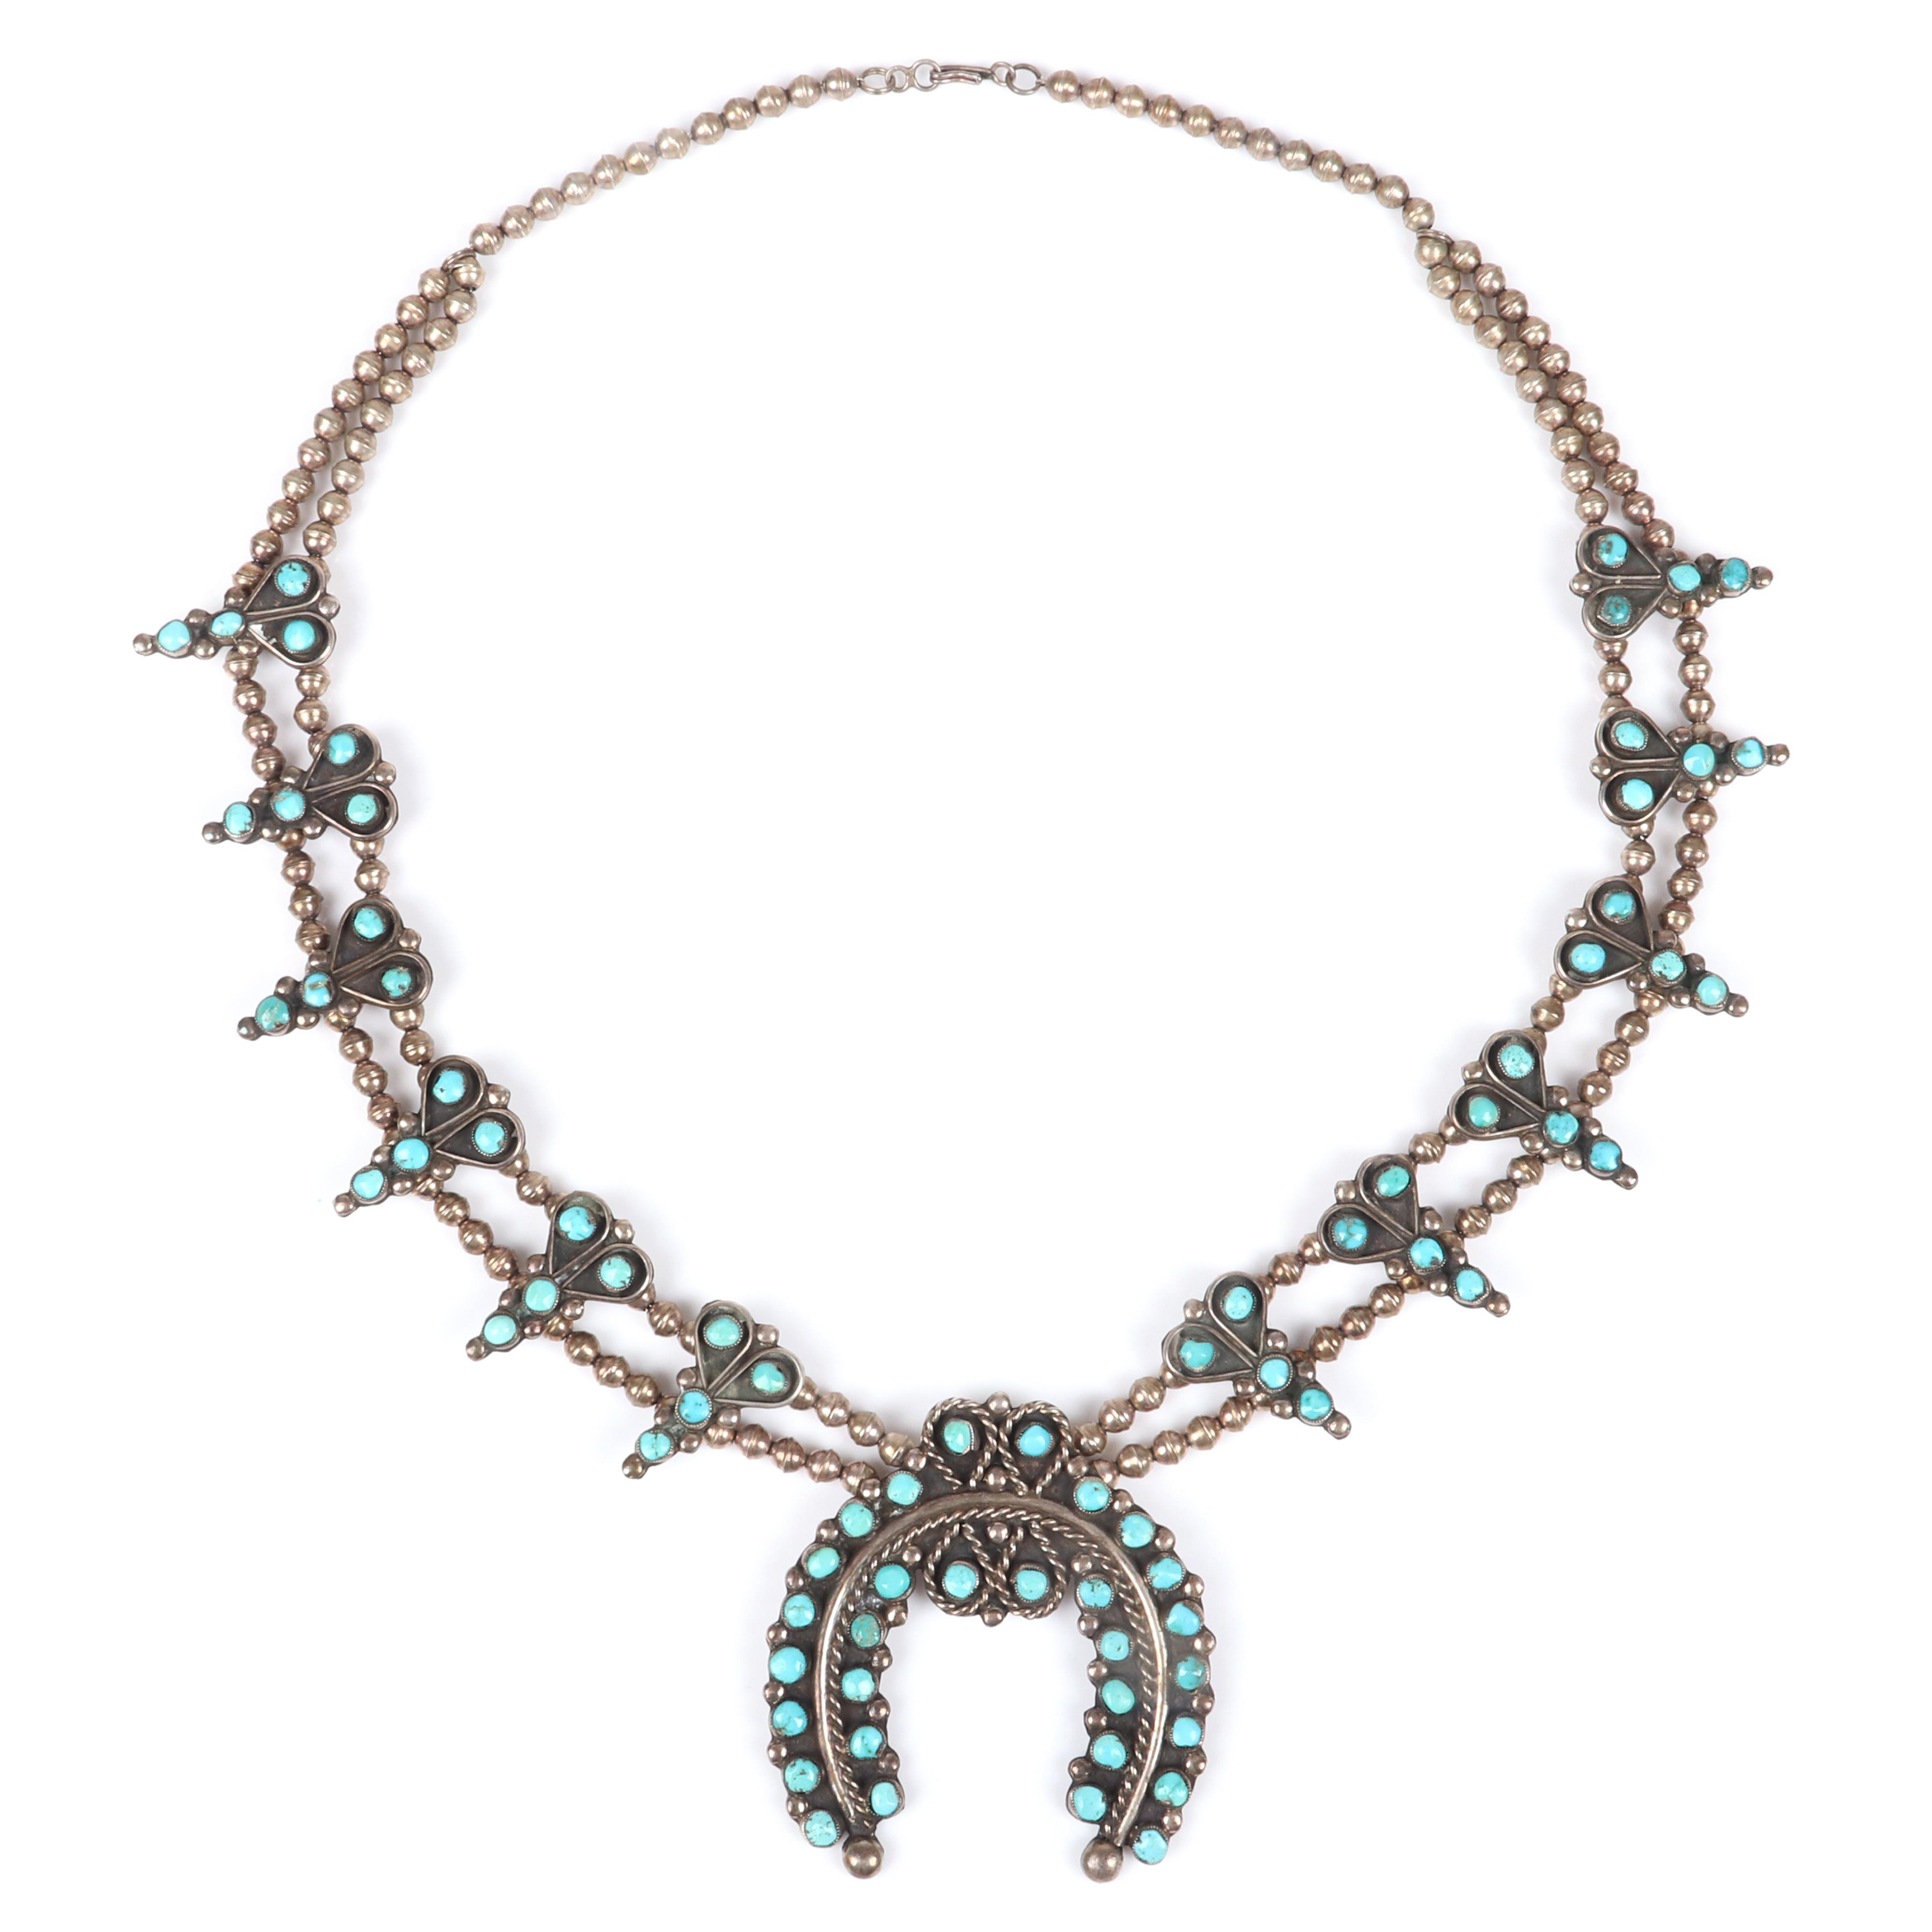 Leonard Weebothee (1923-1992) Zuni Native American Indian Old Pawn turquoise and sterling silver squash blossom necklace with 78 turquoise cabochons & 2 rows of handmade silver beads and large naja withe rope detail. 27""